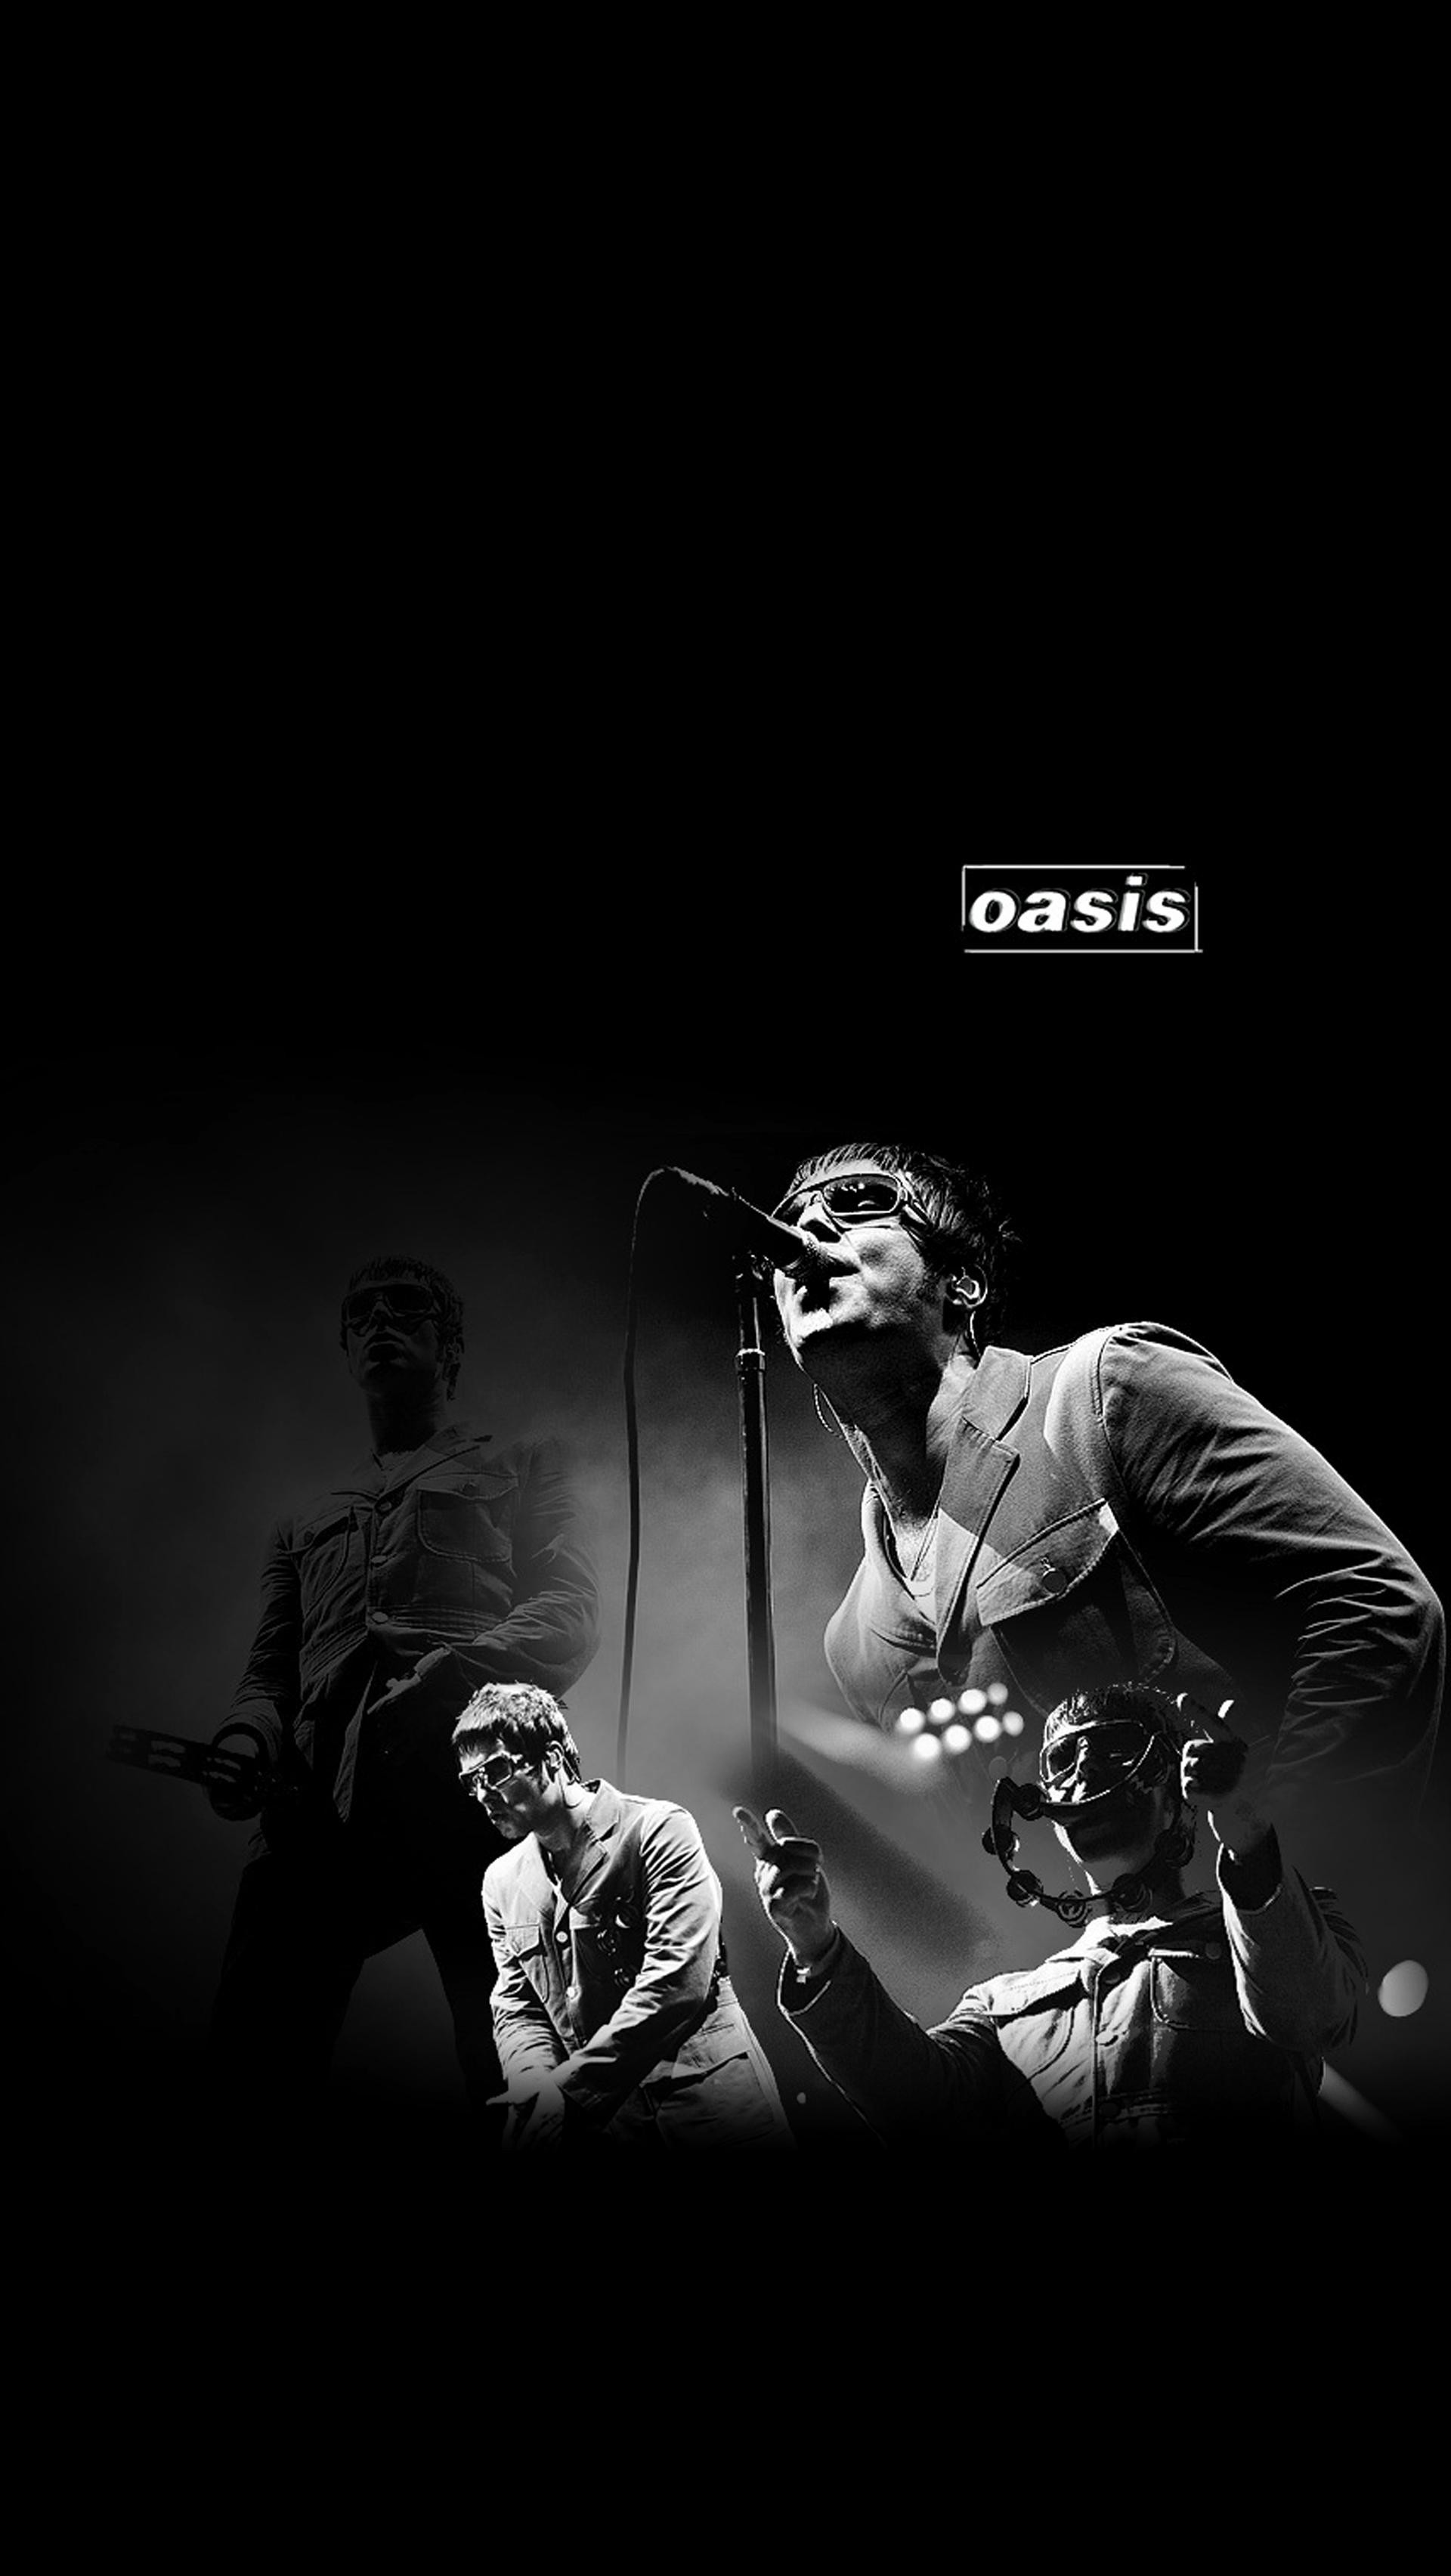 Res: 1920x3408, oasis iphone wallpaper #638589 Oasis_iPhone5_BritishLarge  Oasis_iPhone5_British Oasis_iPhone5_White Oasis_iPhone5_Collage  Oasis_iPhone5_Black